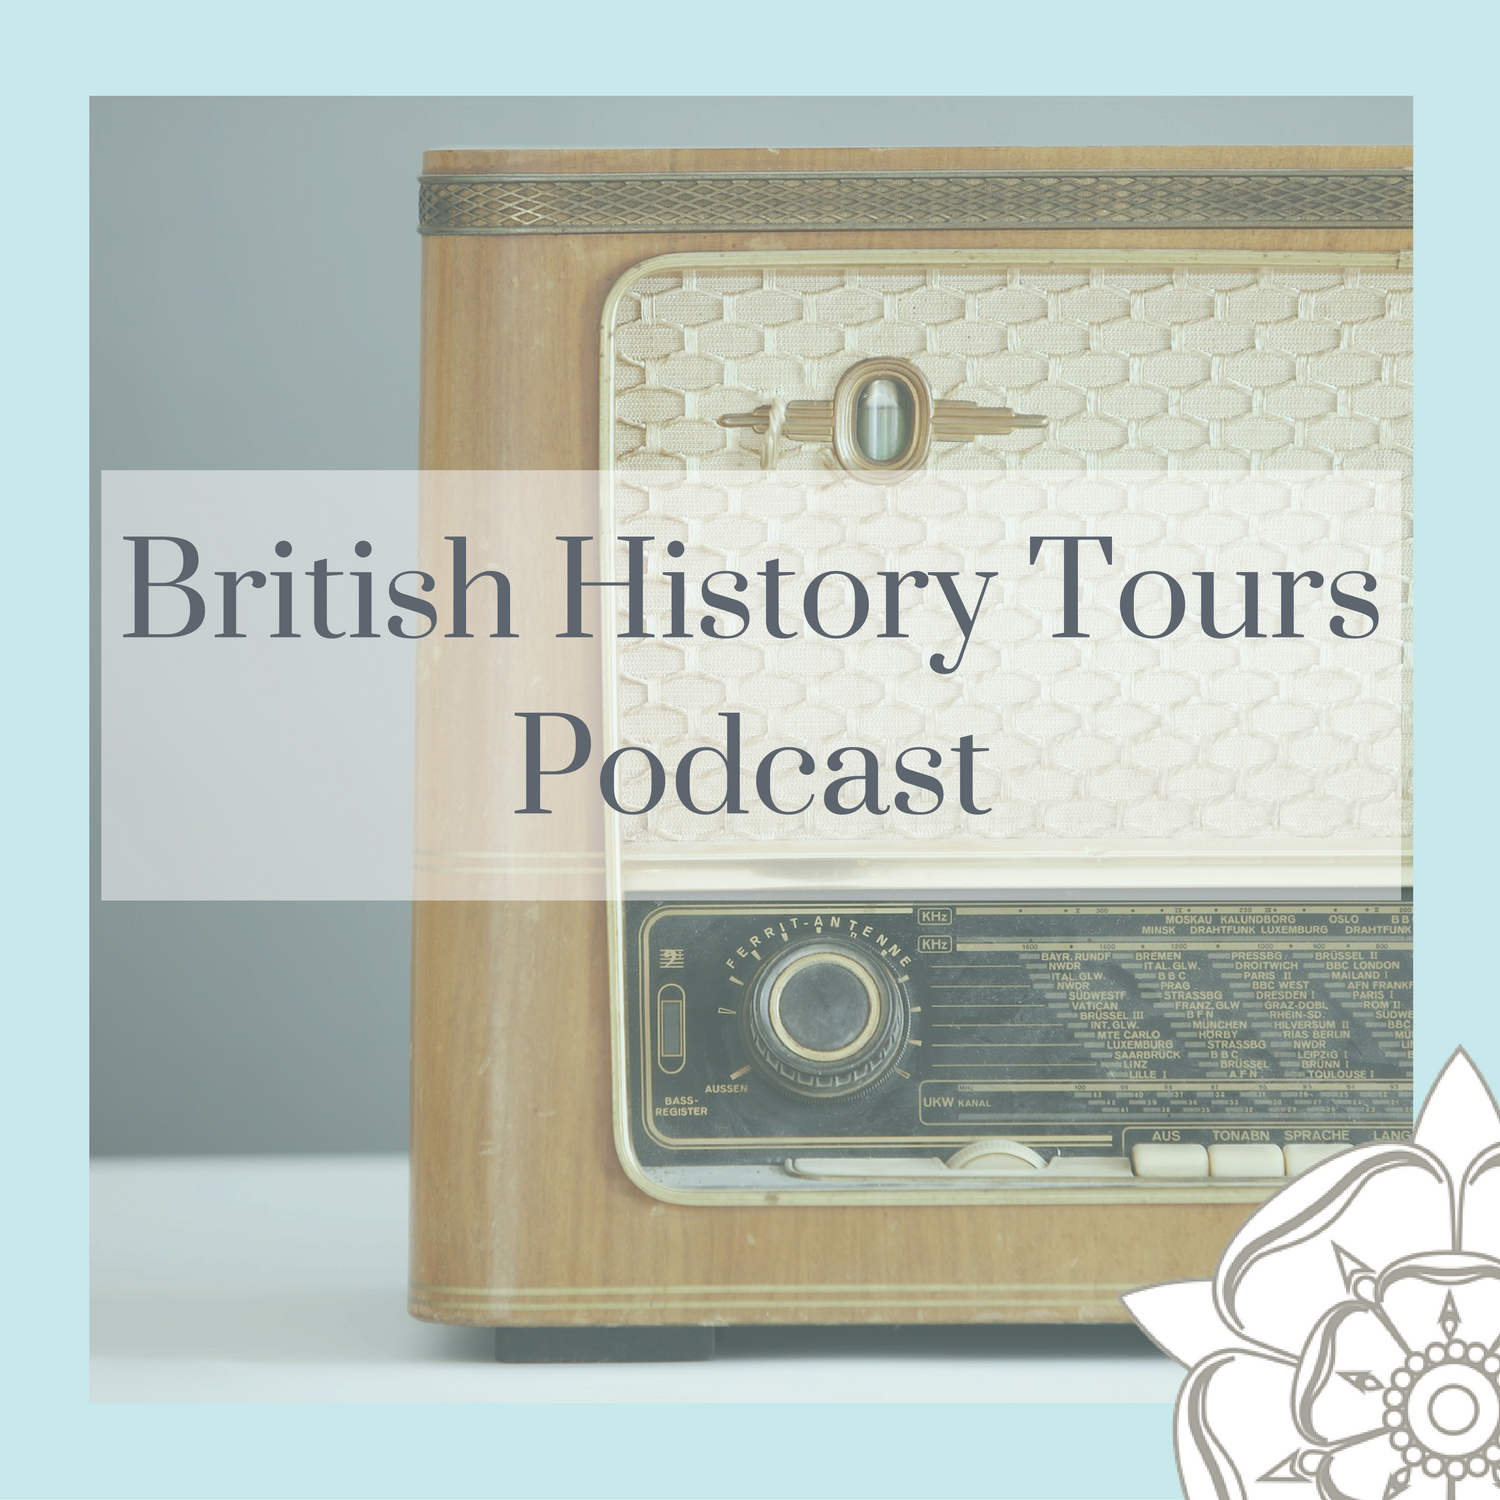 British History Tours Podcast